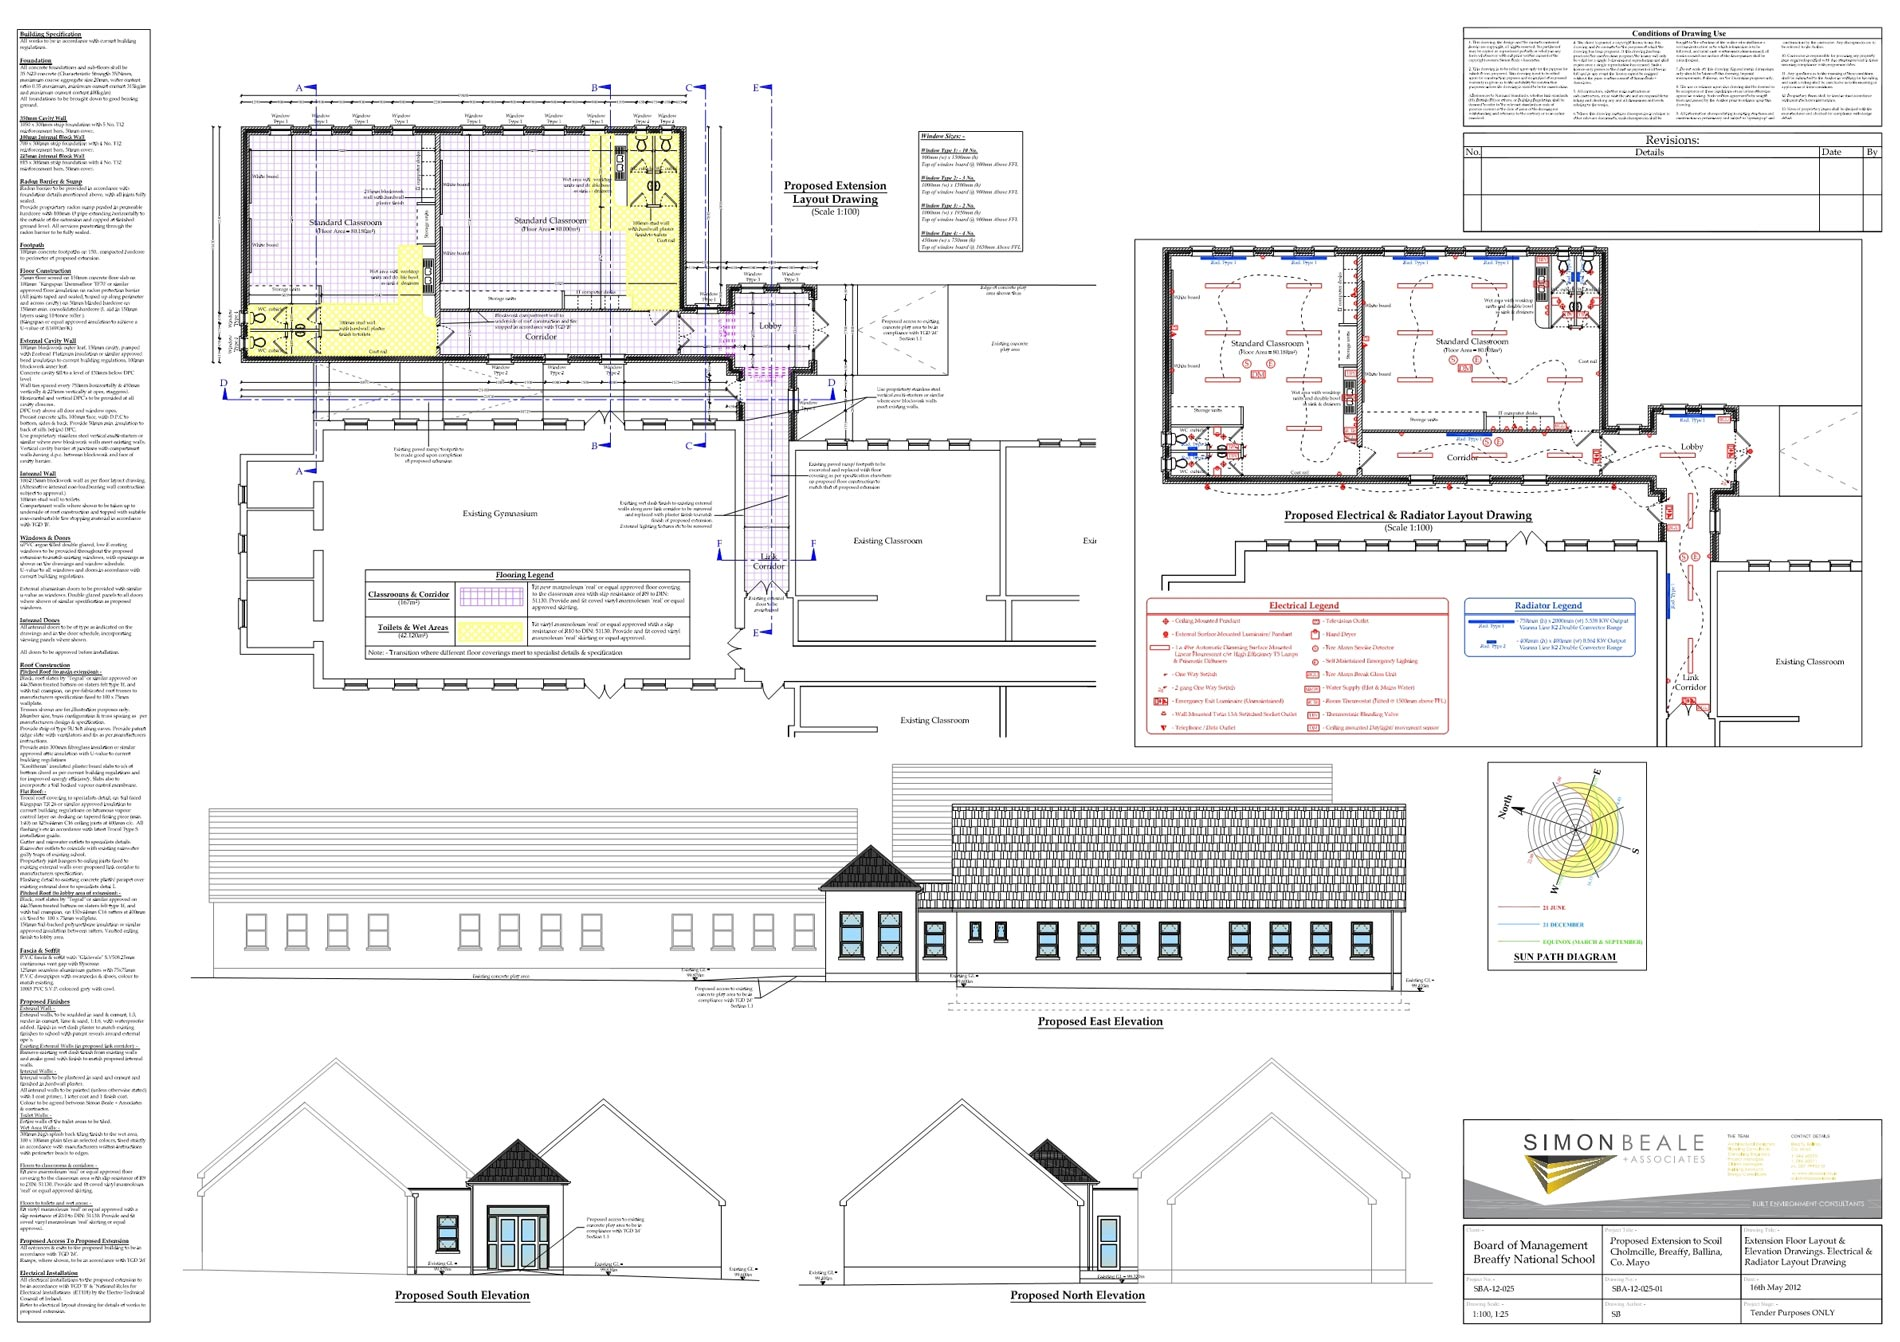 2012-05-16_floor_layout__elevations_pagenumber